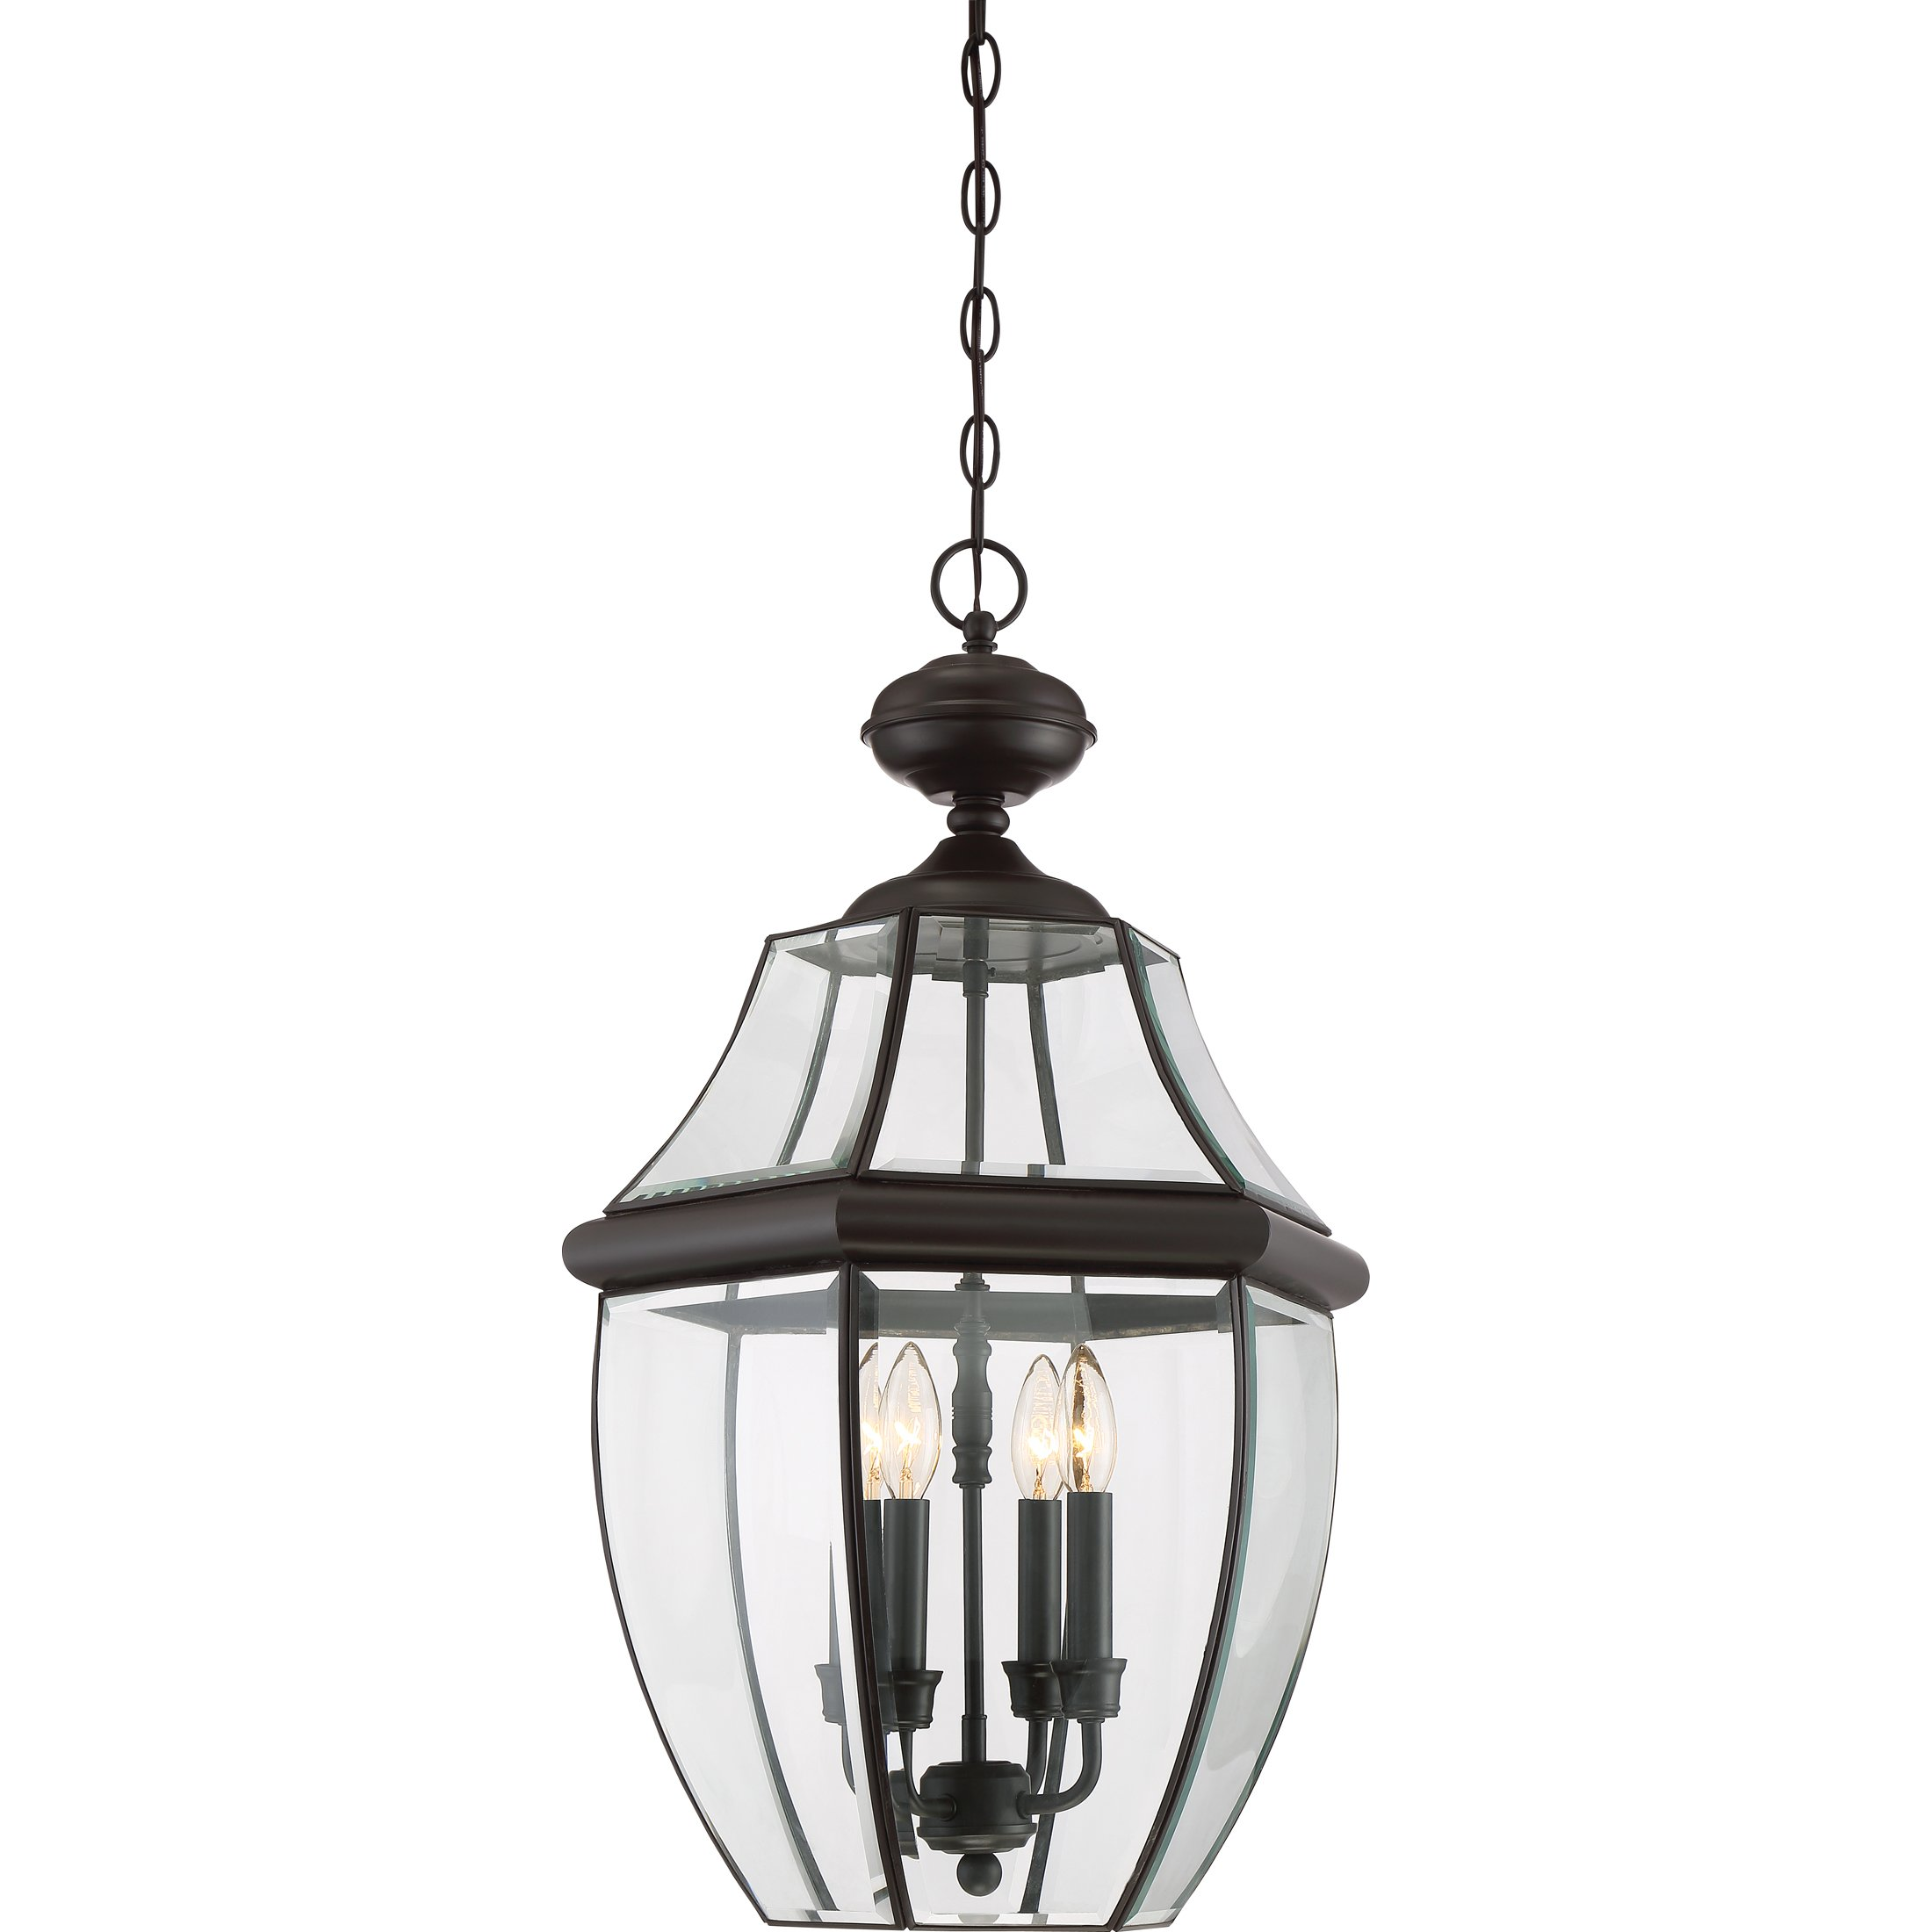 Quoizel NY1180Z 4-Light Newbury Outdoor Lantern in Medici Bronze